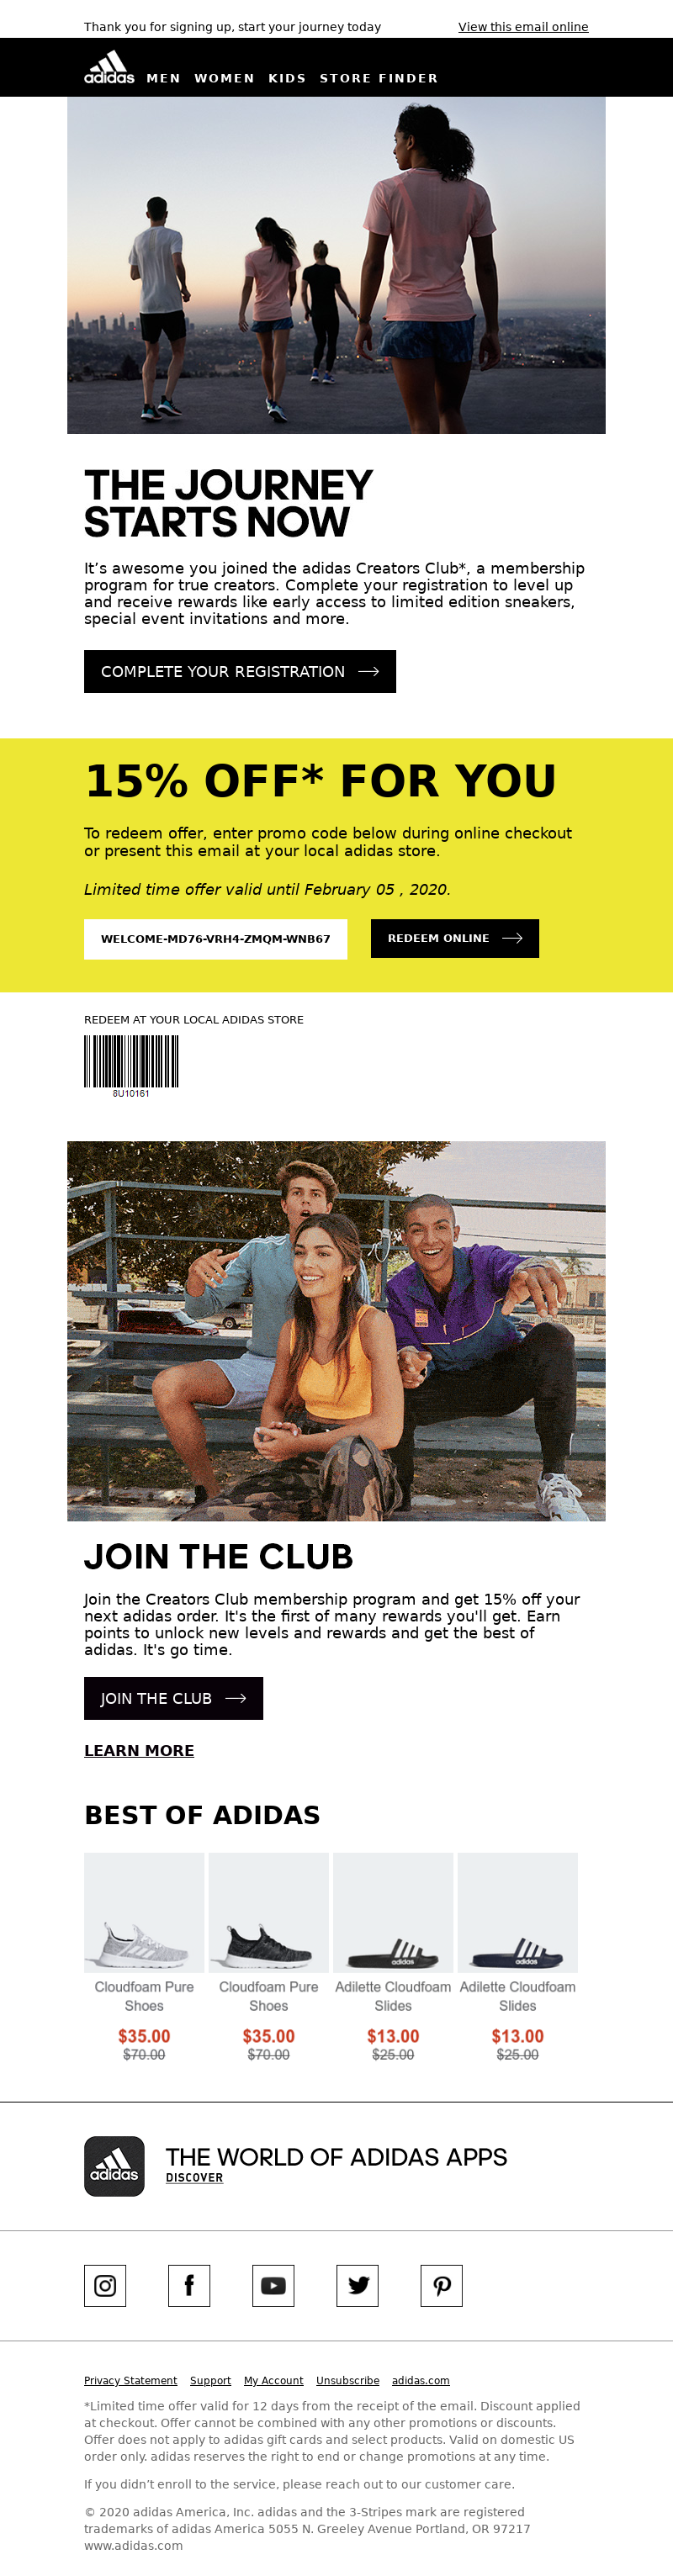 View this email online Adidas Logo MEN WOMEN KIDS STORE FINDER THE JOURNEY